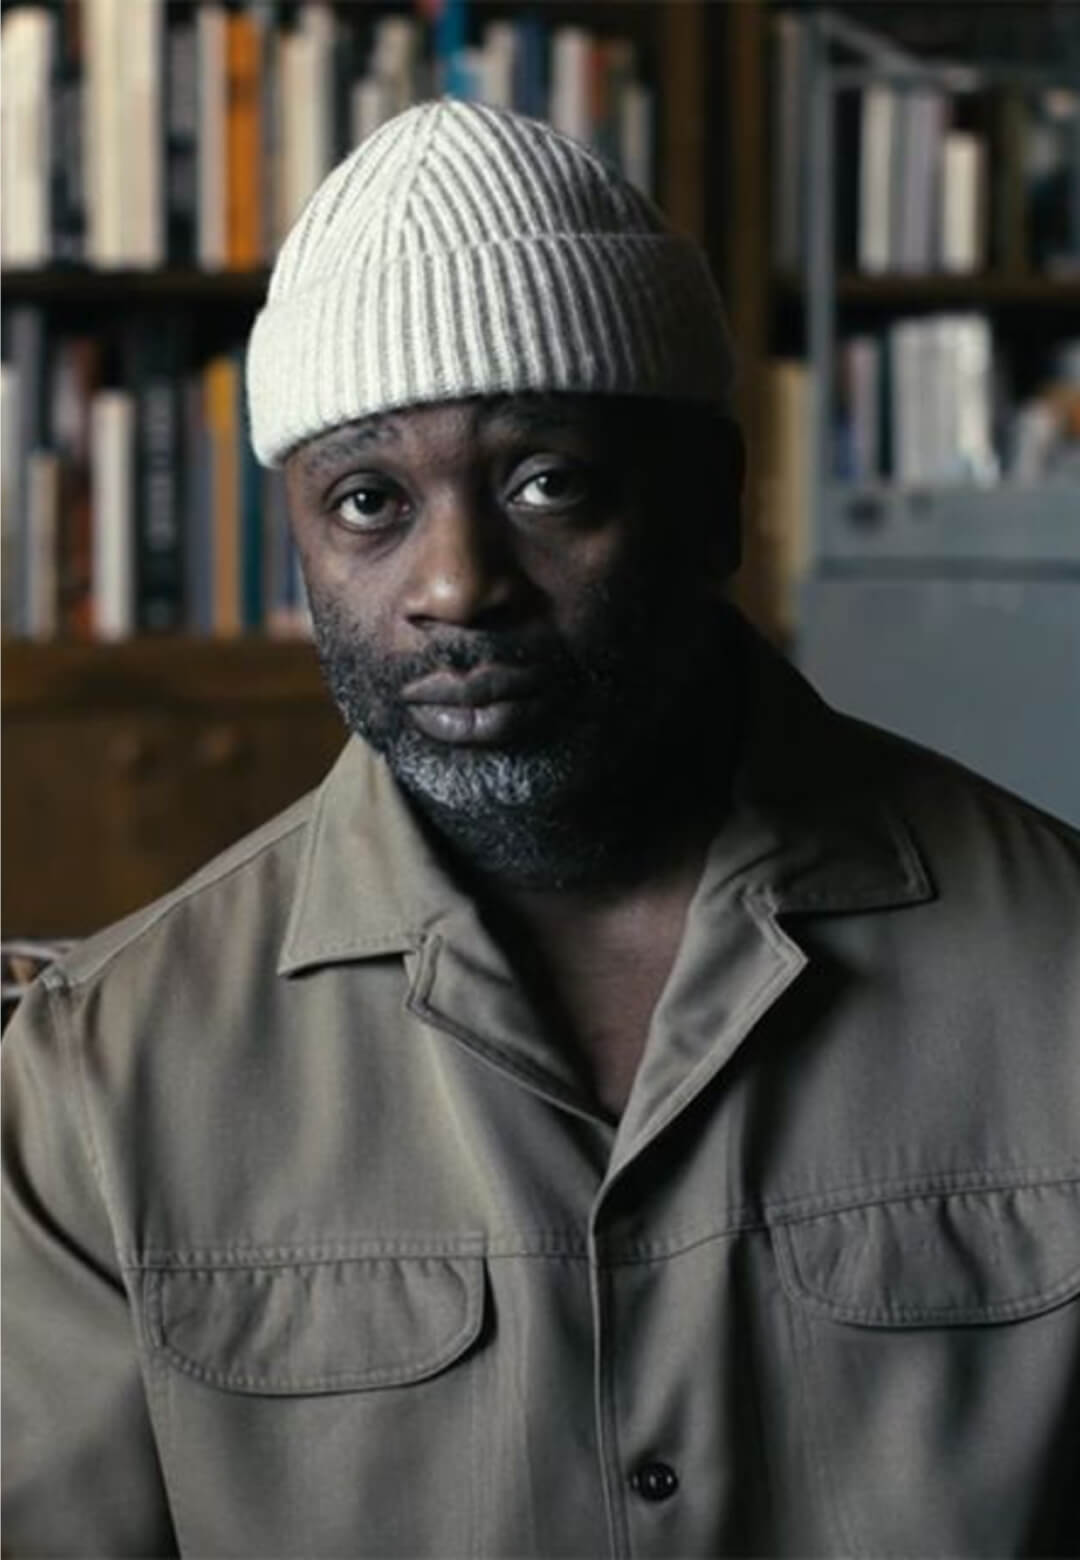 In the Artist Spotlight special on him, Theaster Gates allows audiences into his studio | Theaster Gates | STIRworld